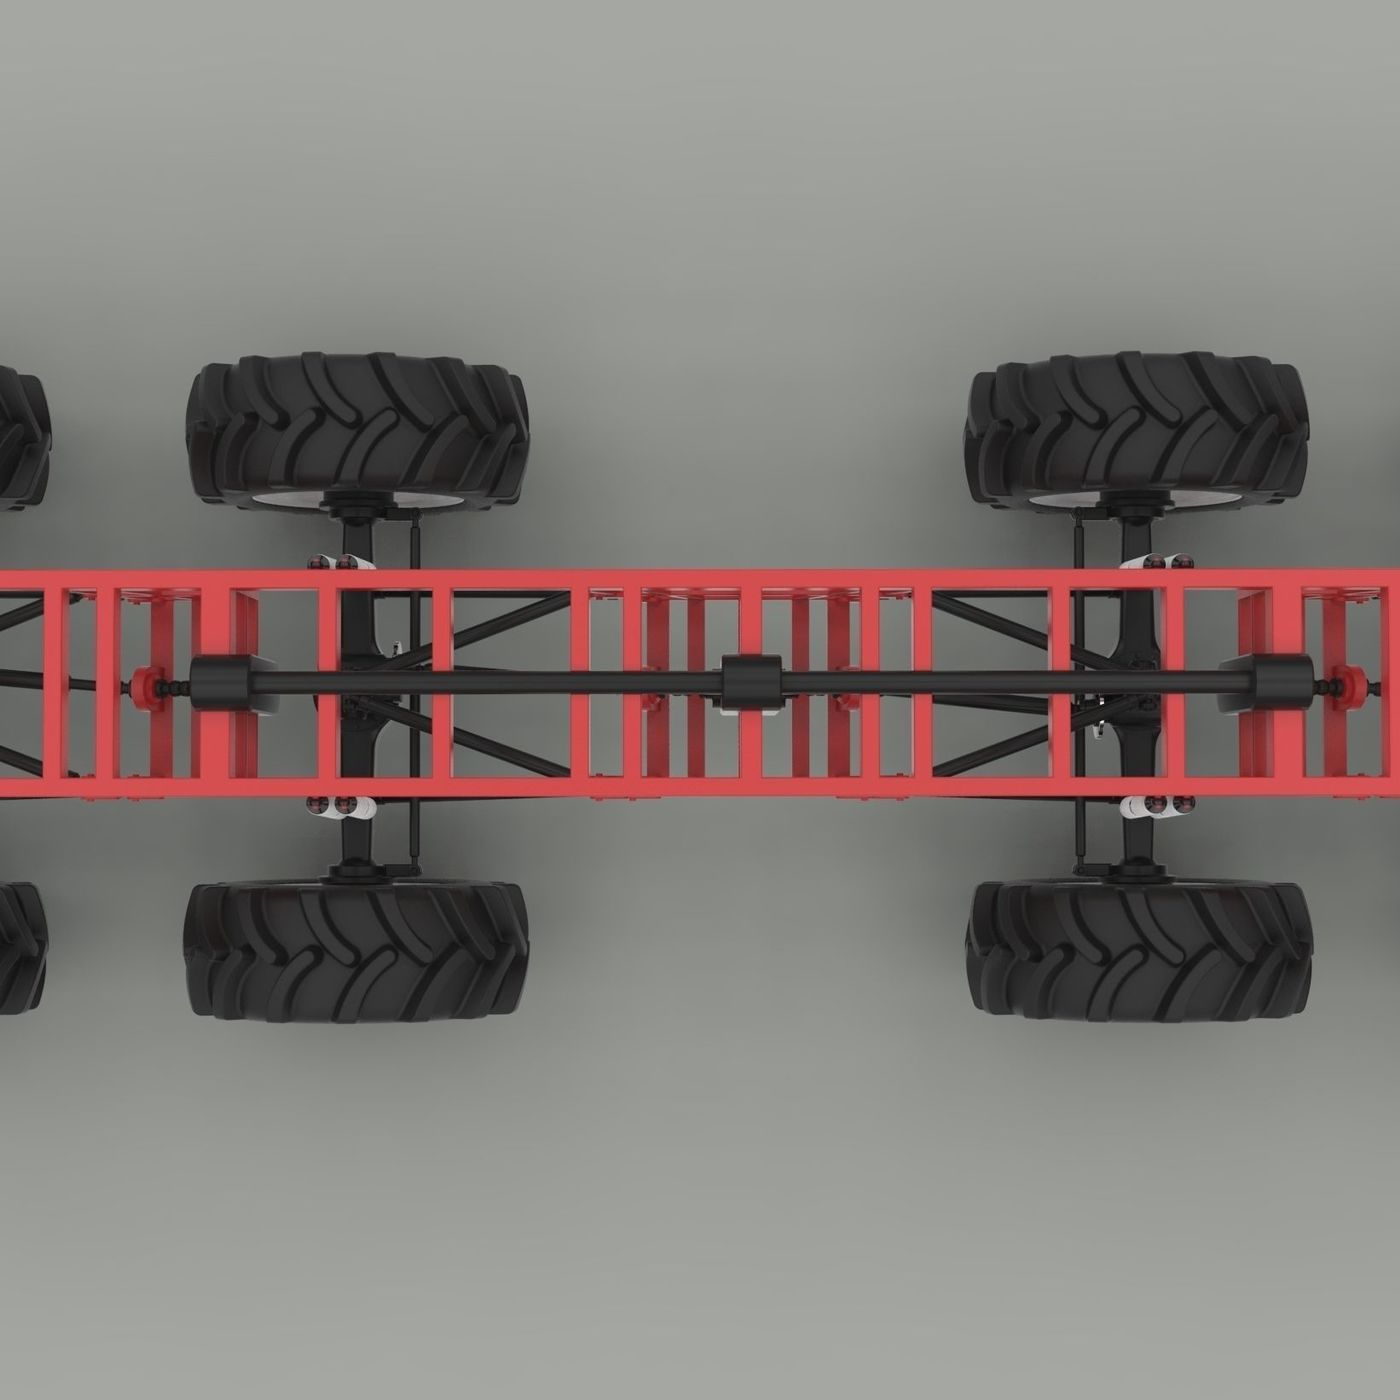 Chassis 8x8